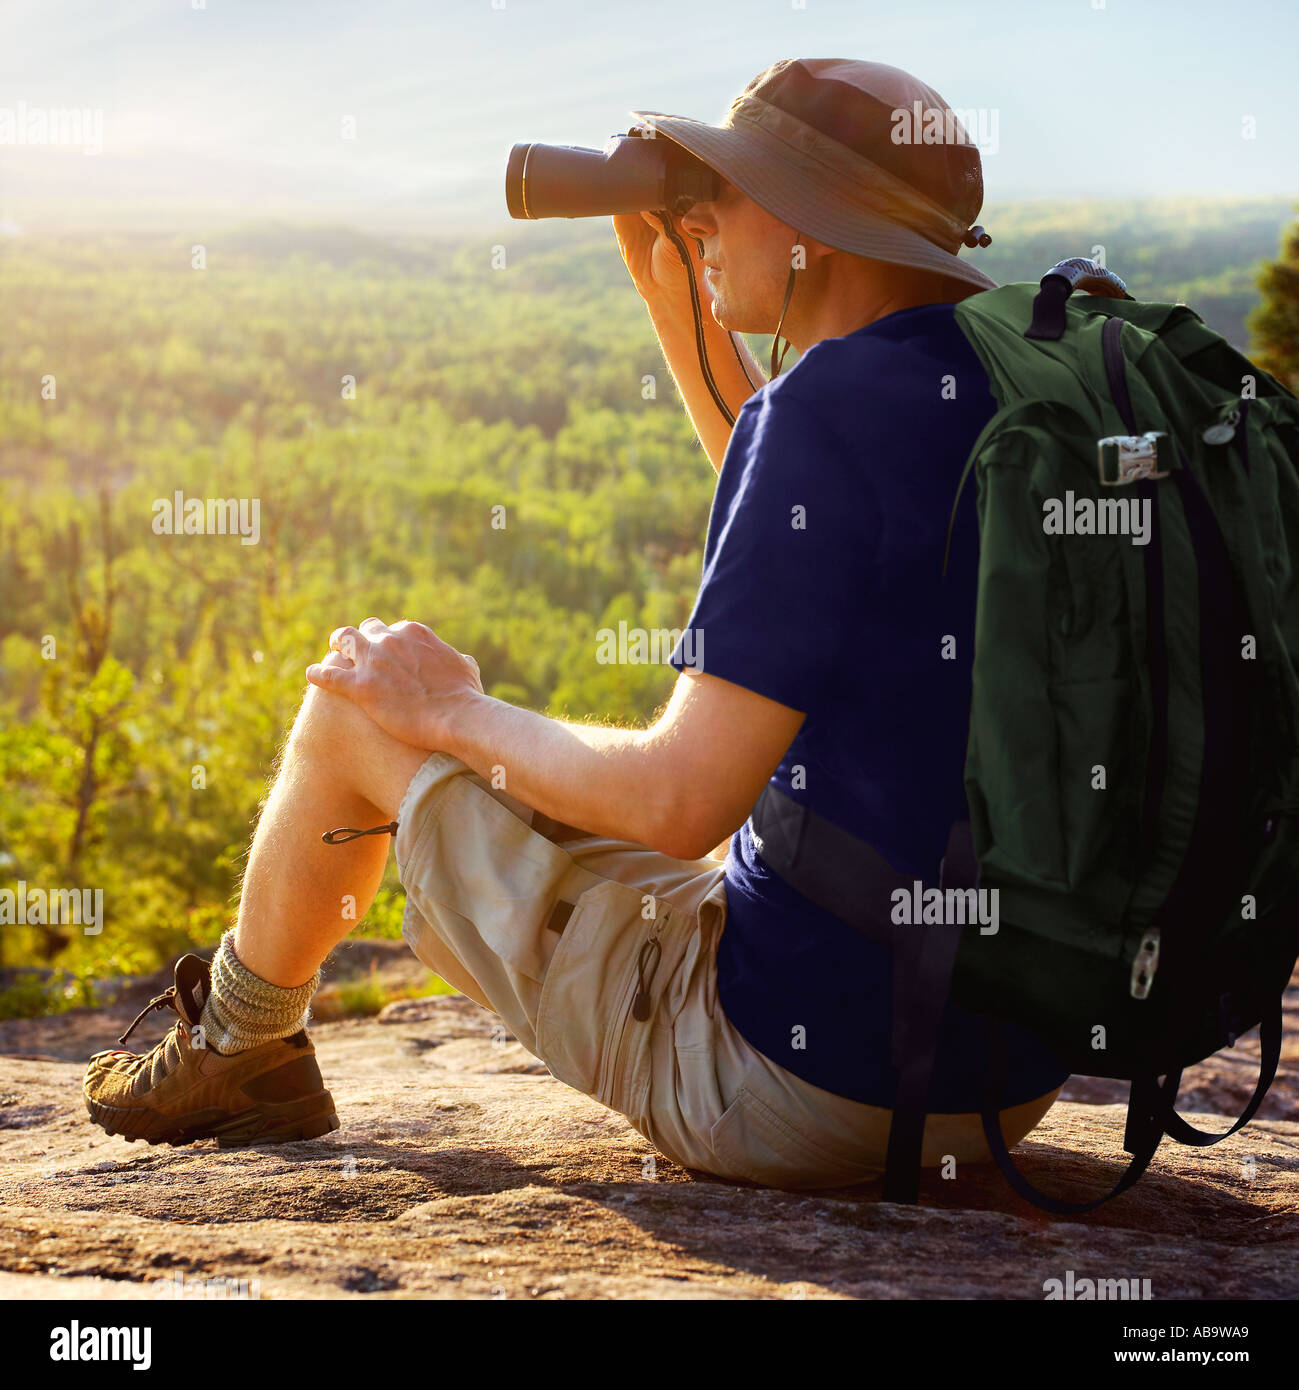 Male hiker with backpack sitting on a hillside looking through binoculars at wilderness - Stock Image